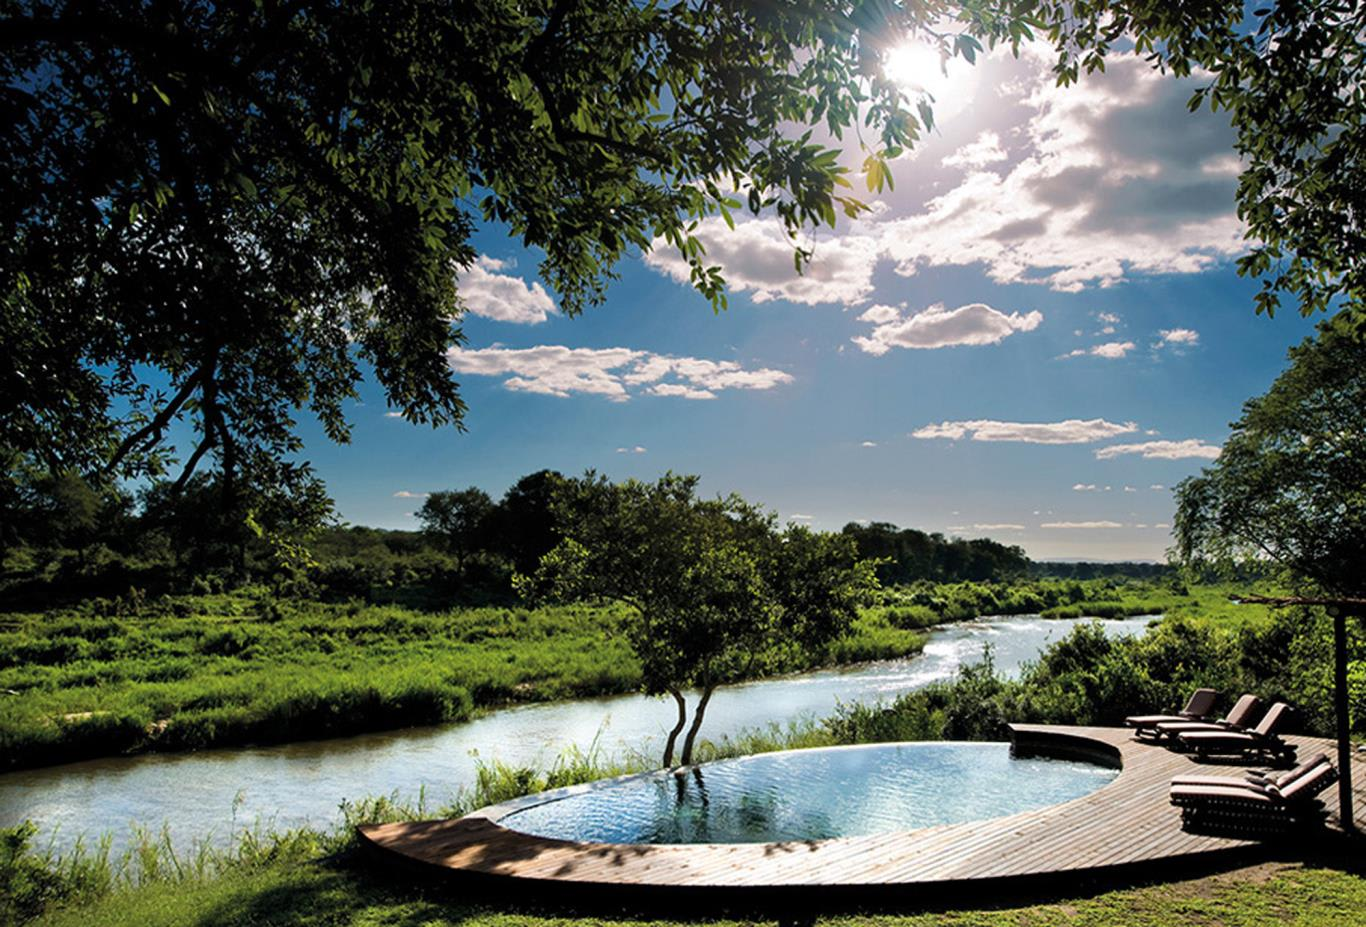 Plunge-pool-overlooking-river